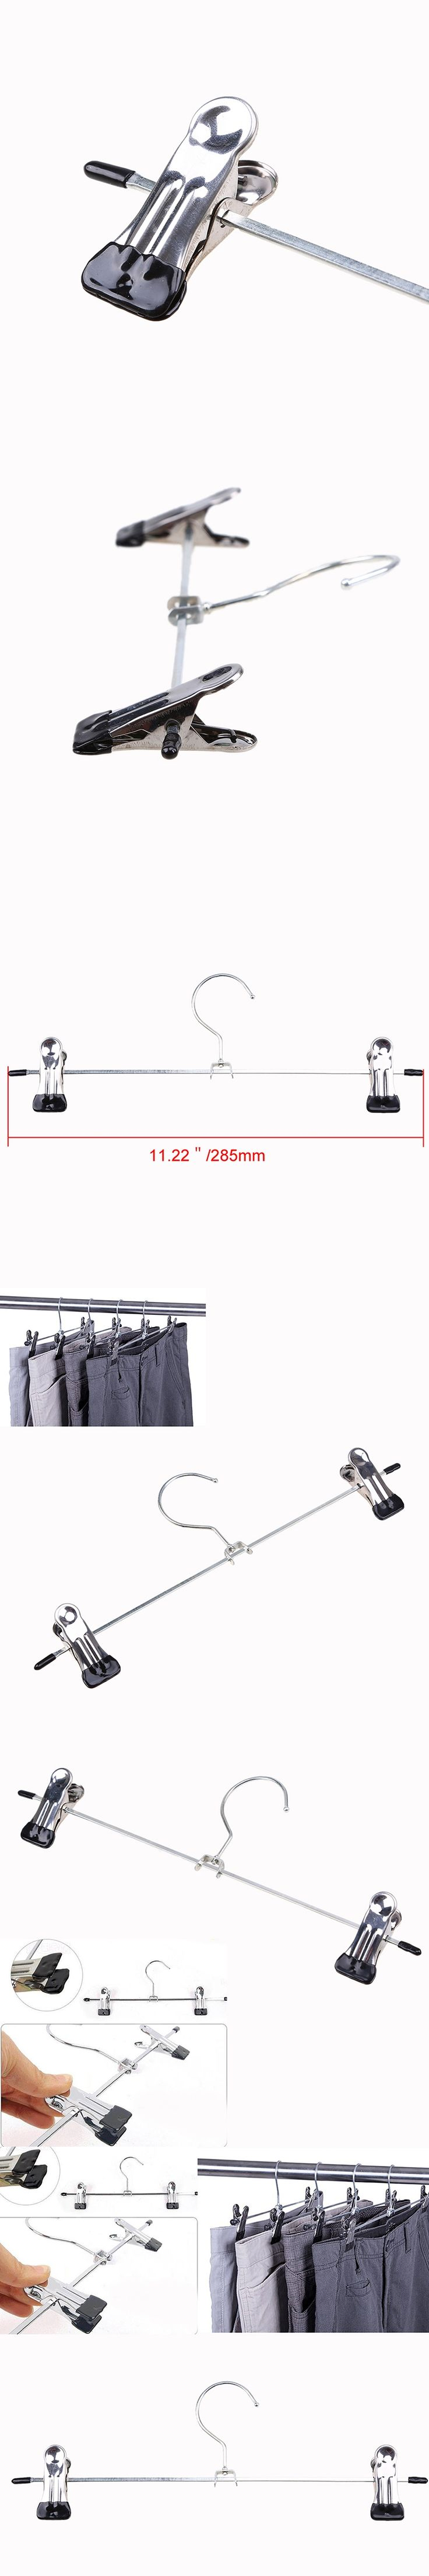 WHISM Adjustable Clamp Plastic Metal Trousers Rack Wardrobe Clothes Dress Bra Sock Hanger Clips Outdoor Airing Washing Supplies